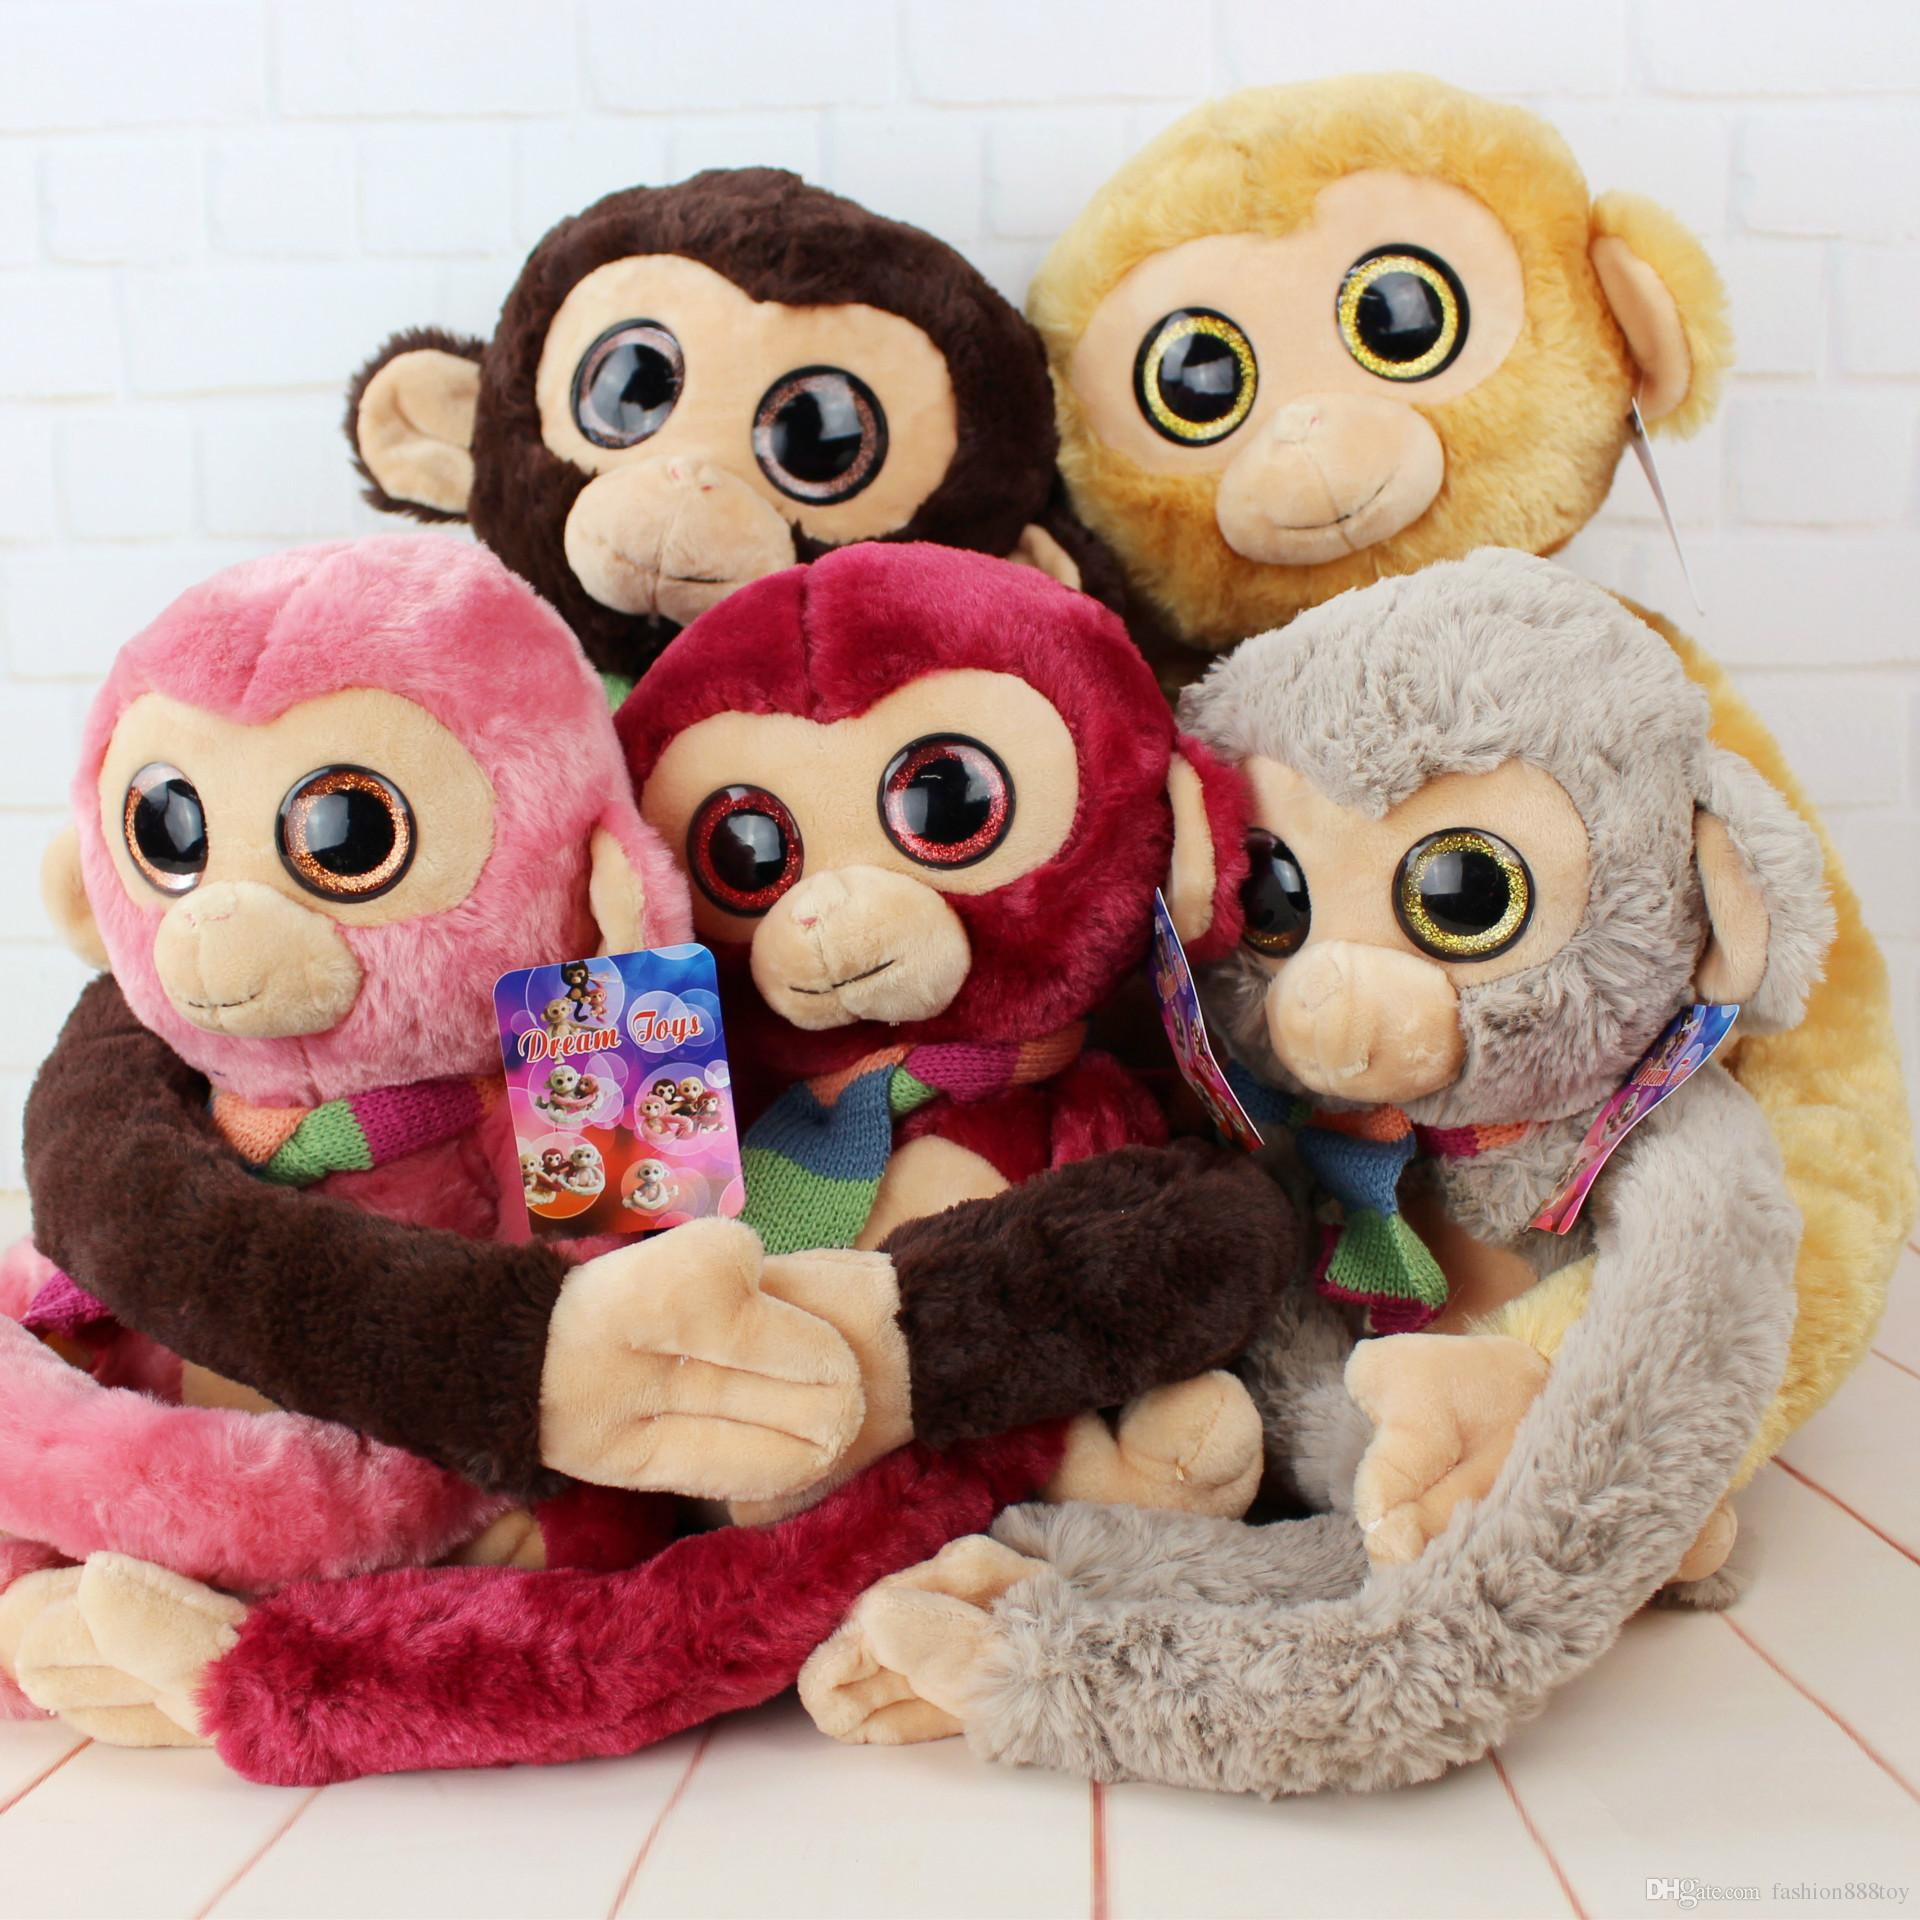 2019 Big Eyes Monkey Plush Toy Sleep Pillow Birthday Gift Soft